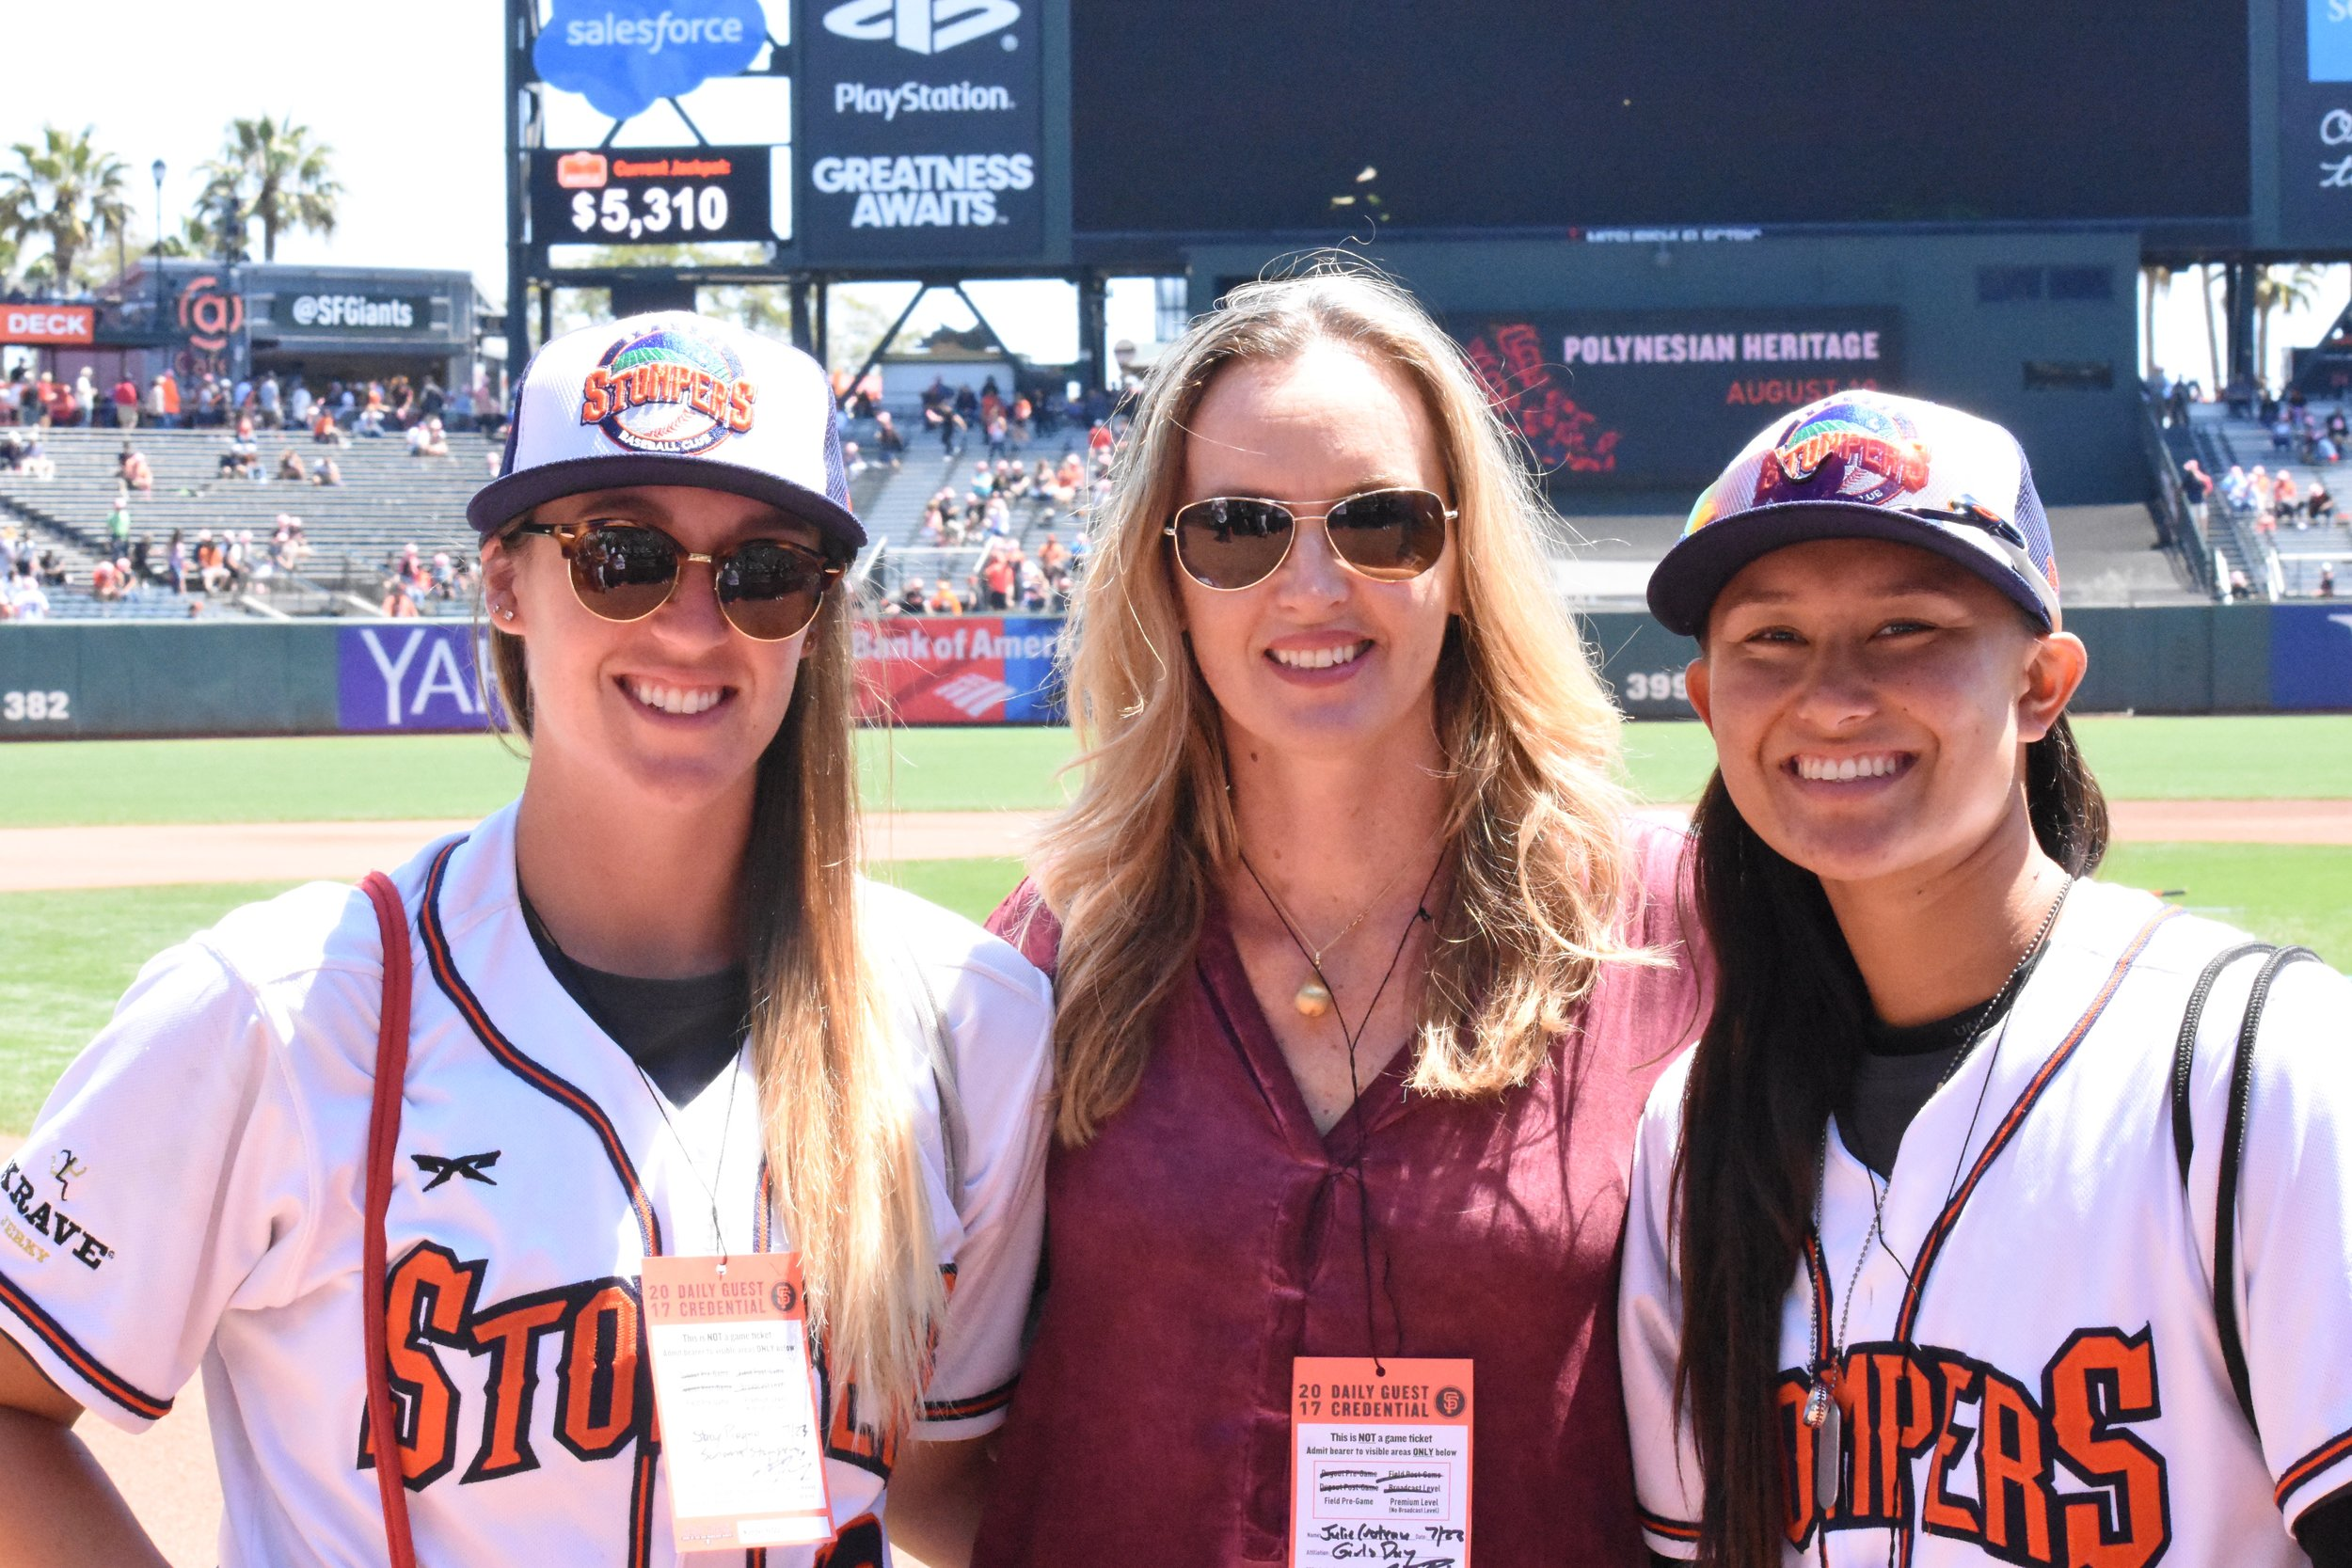 Stacy Piagno (left) and Kelsie Whitmore (right) pose with Julie Croteau, the first woman to play men's NCAA baseball, on the field at AT&T Park on Sunday. (James W. Toy III / Sonoma Stompers)